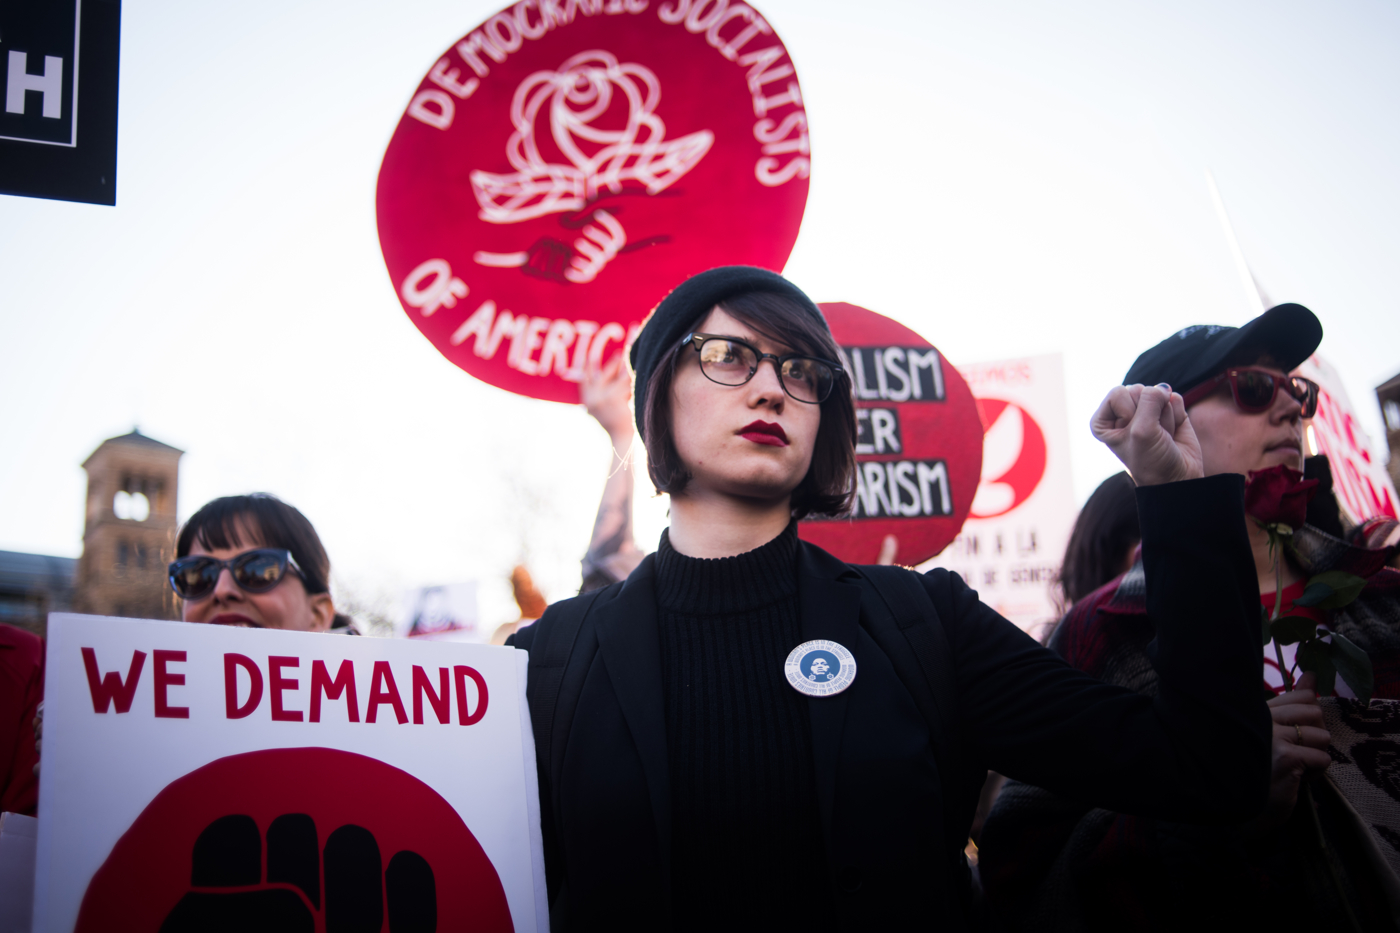 """Sarah Lyons, 24, during an International Women's Day rally and march at Washington Square Park in New York, NY on March 8, 2017. She said:""""I'm litigated by the fact that women's labor isn't valued much in this country, not just in the office but their emotional labor too. I stand in solitary with those who couldn't take off work today. My mother was a politician and she inspired me but I'm also inspired by the magnitudes of women that came before me and had to fight this fight, and the ones who will after. I hope it sends a message to working women and those who couldn't strike today to show that their labor is valued and they are valued in society."""" CREDIT: Mark Kauzlarich for CNN"""